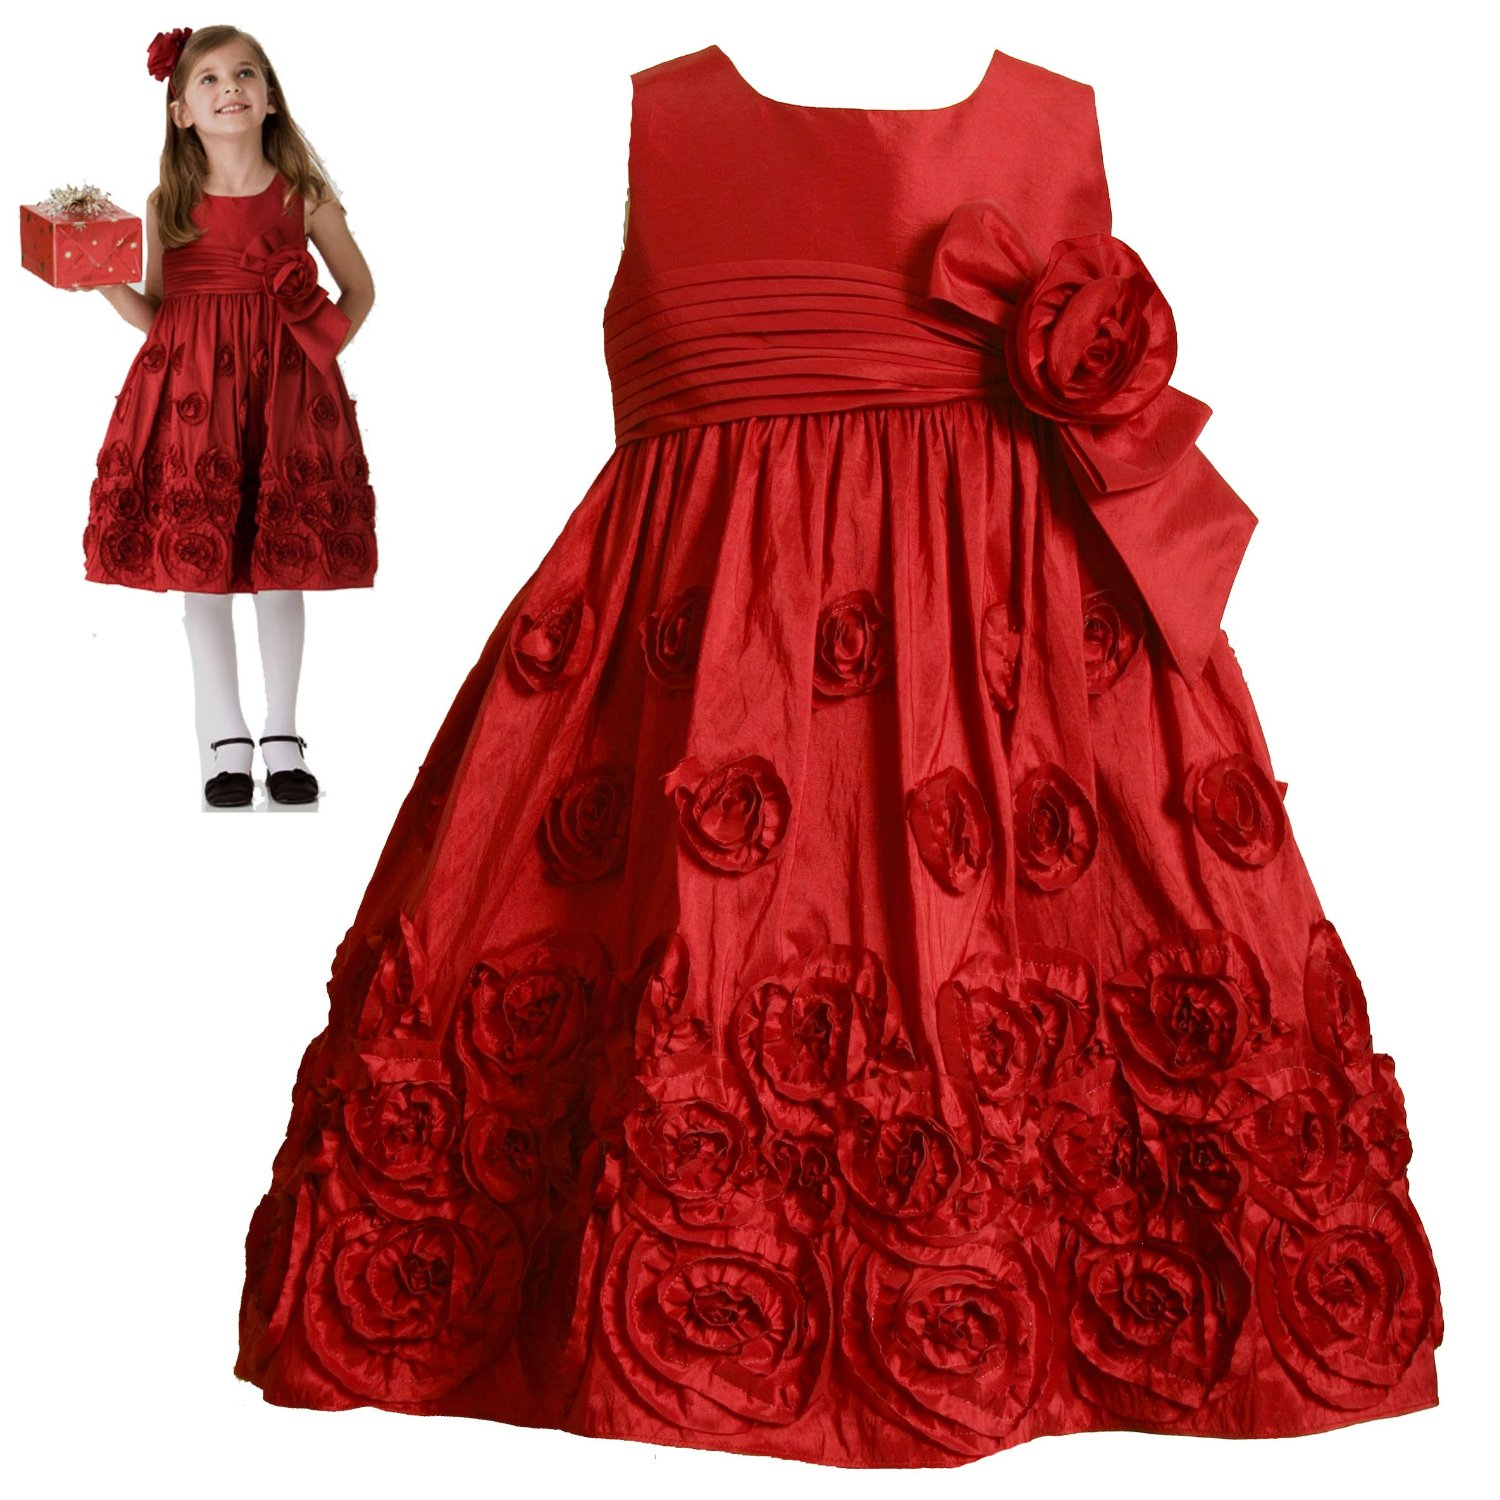 Flower special occasion dresses for girls